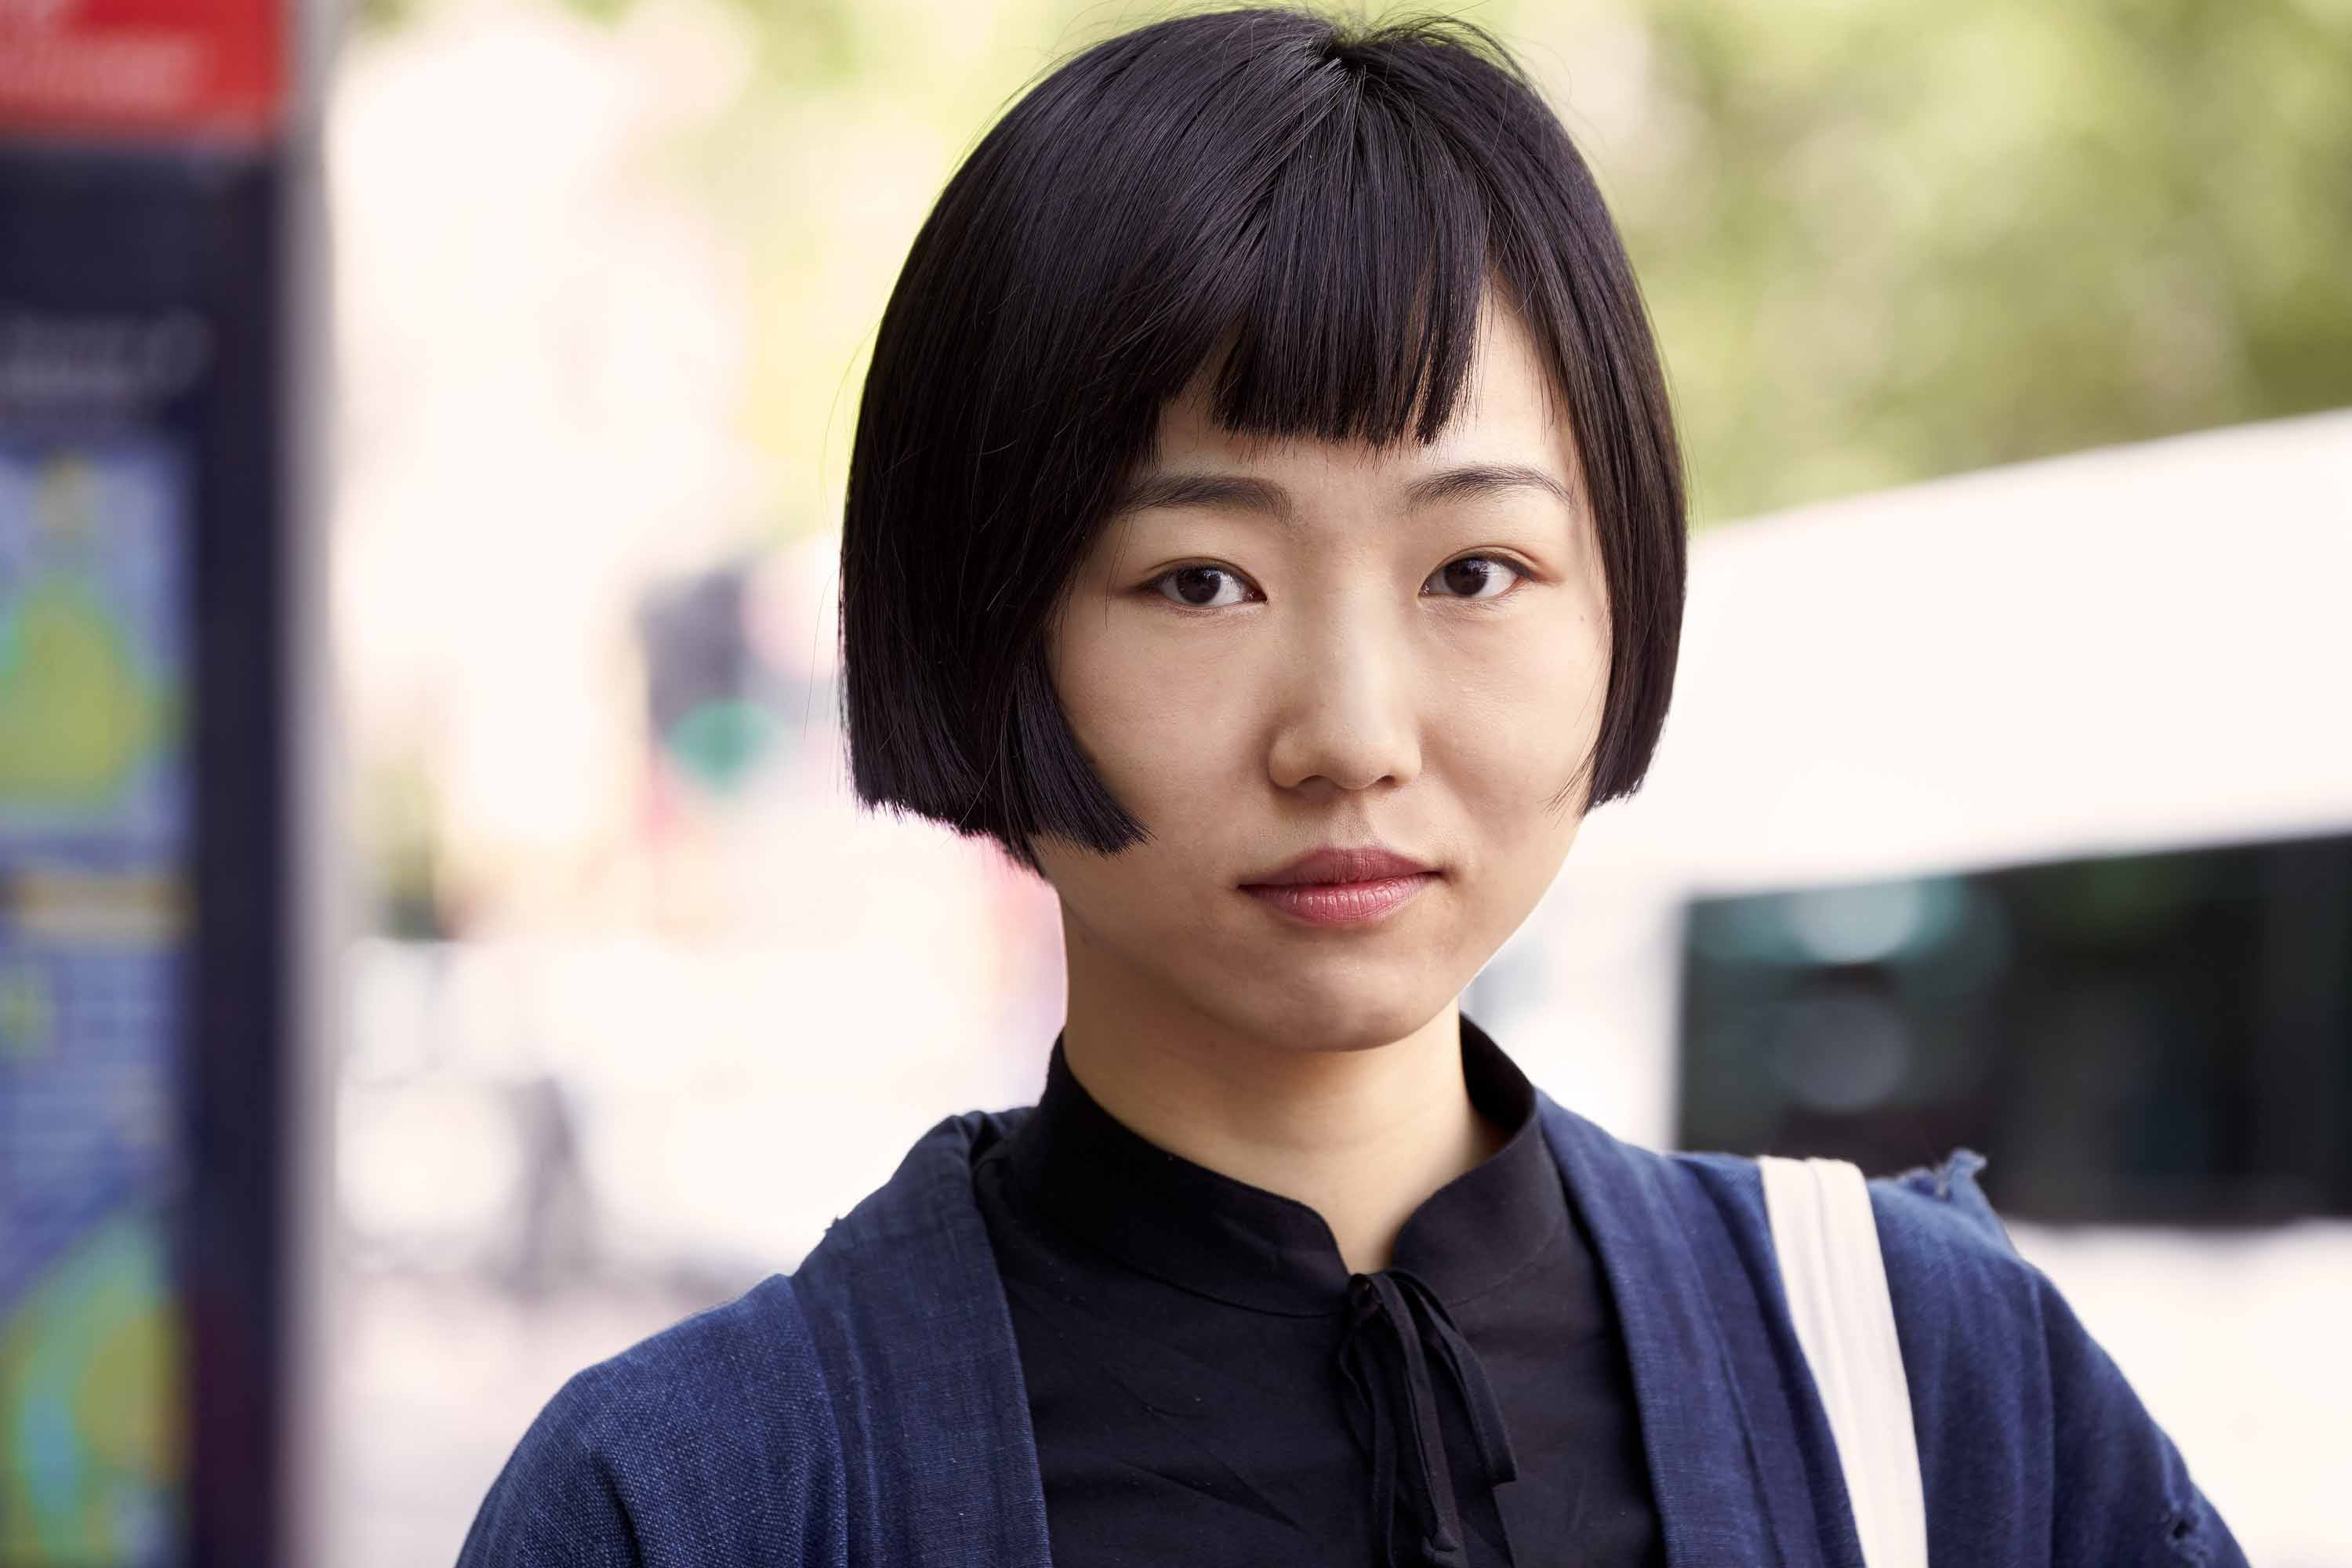 Fashionable haircuts: bob haircut on Asian hair